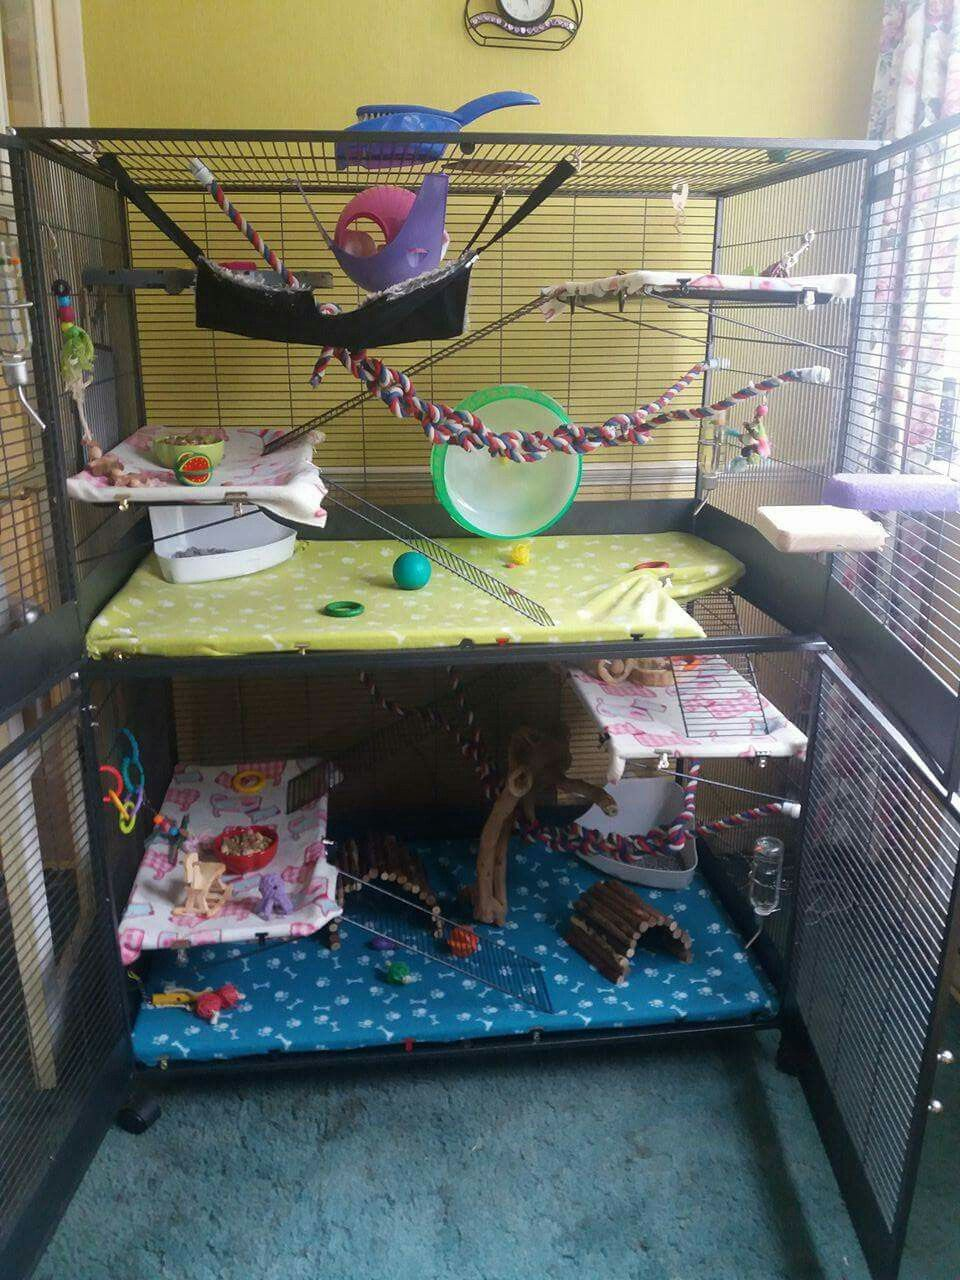 Savic Royal Suite Xl Rat Cage Need More Inspo For Decoration